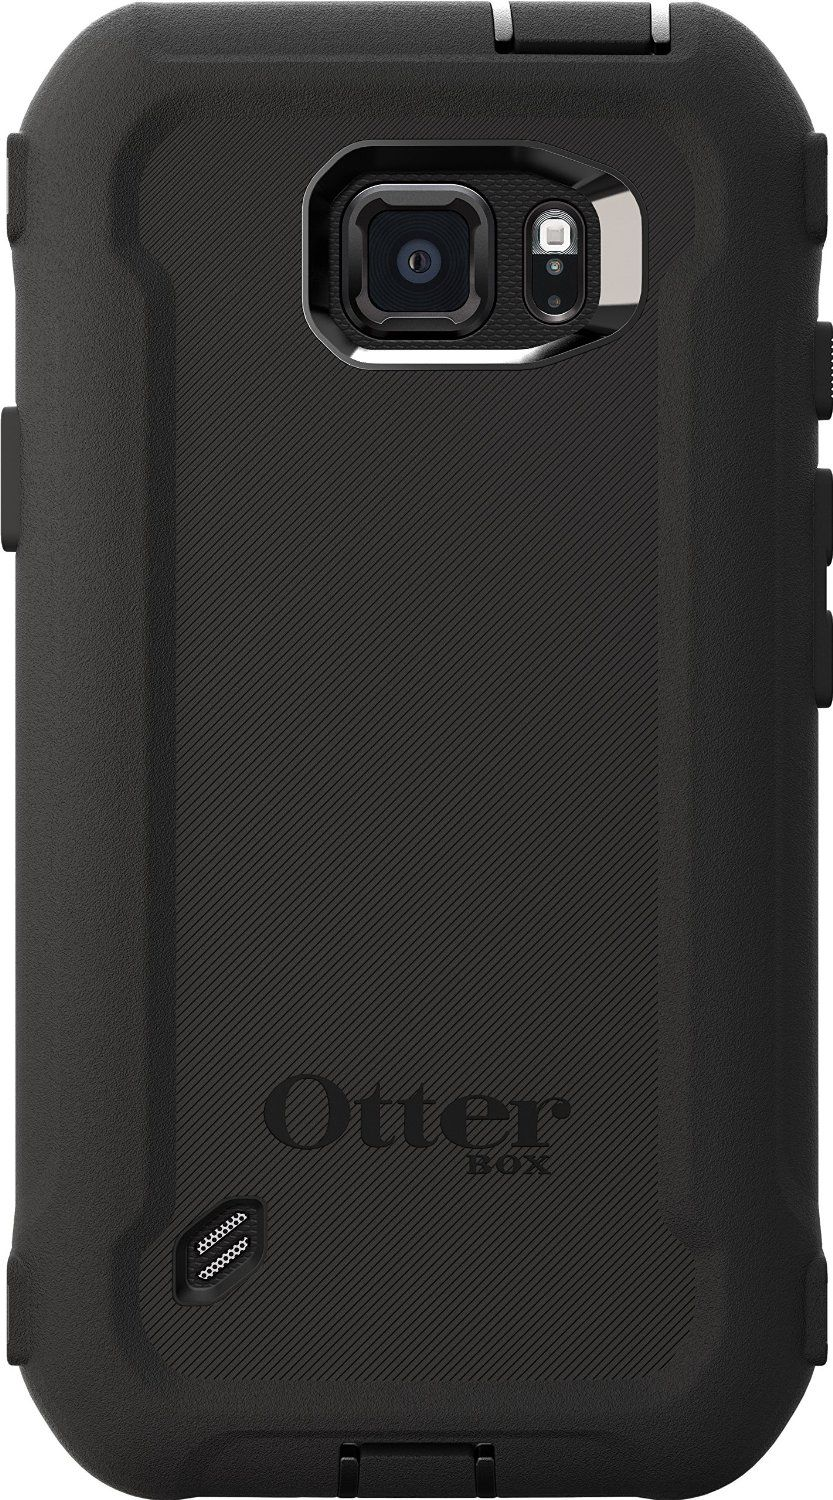 buy online 0d47a c7636 Amazon.com: OtterBox DEFENDER SERIES Case for Samsung Galaxy S6 ...